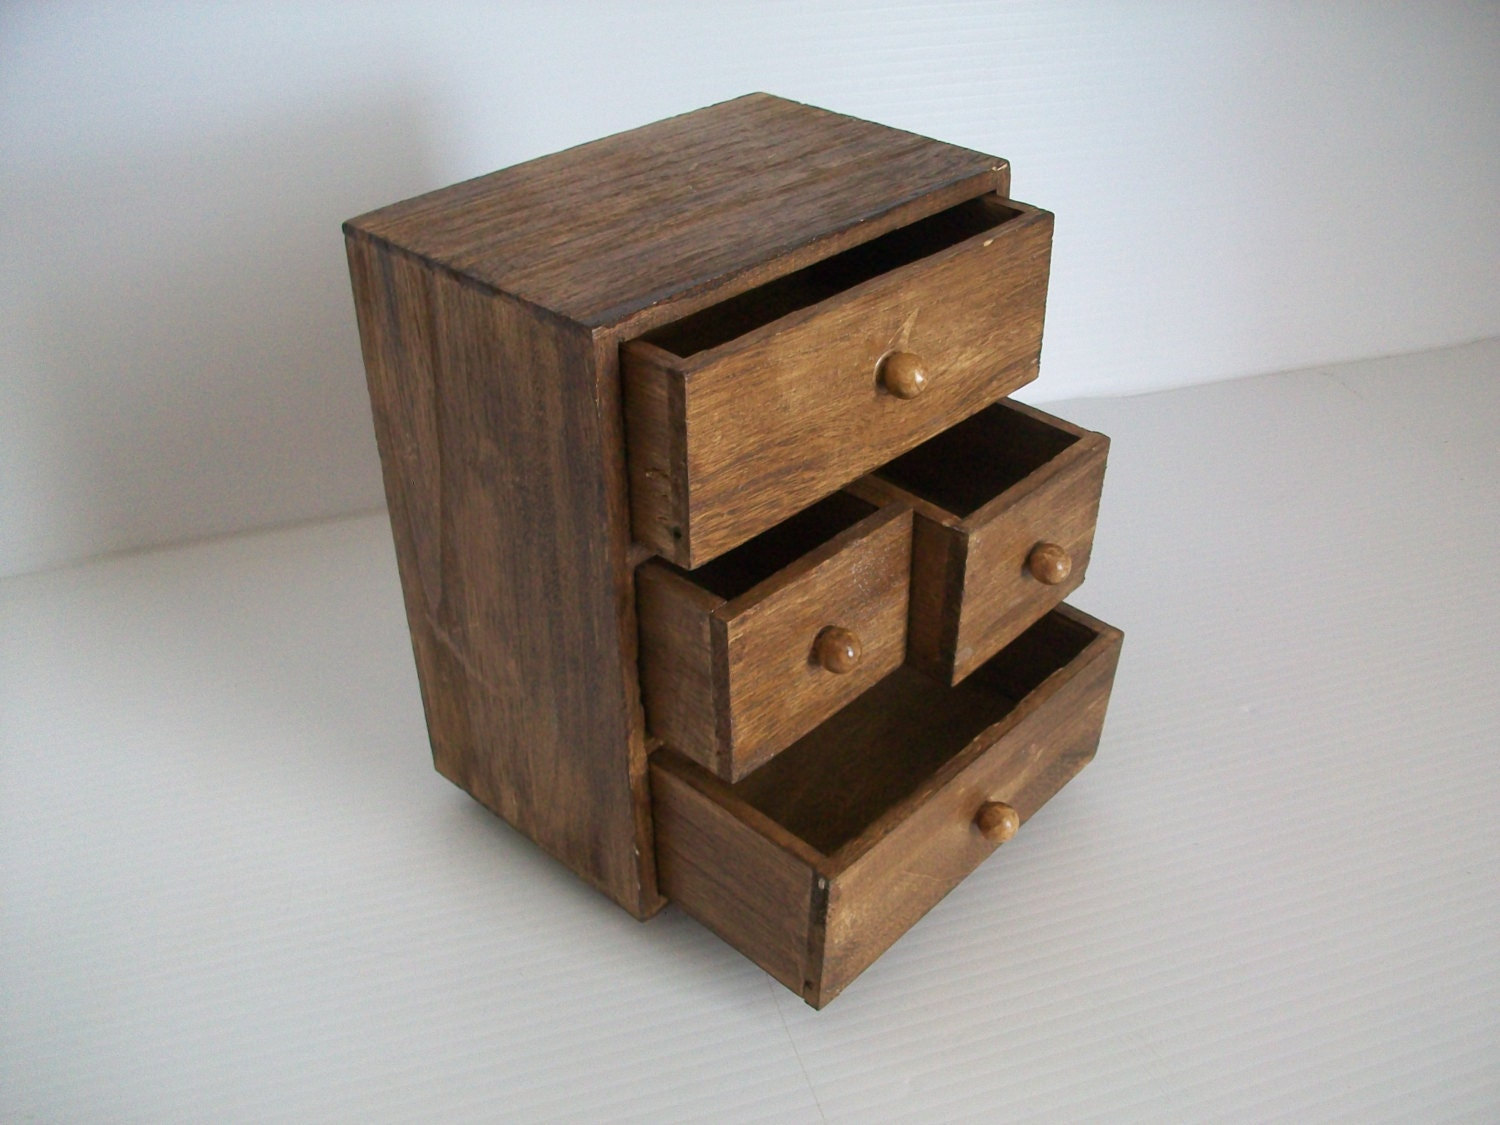 Vintage wooden chest of drawers small desk organizer